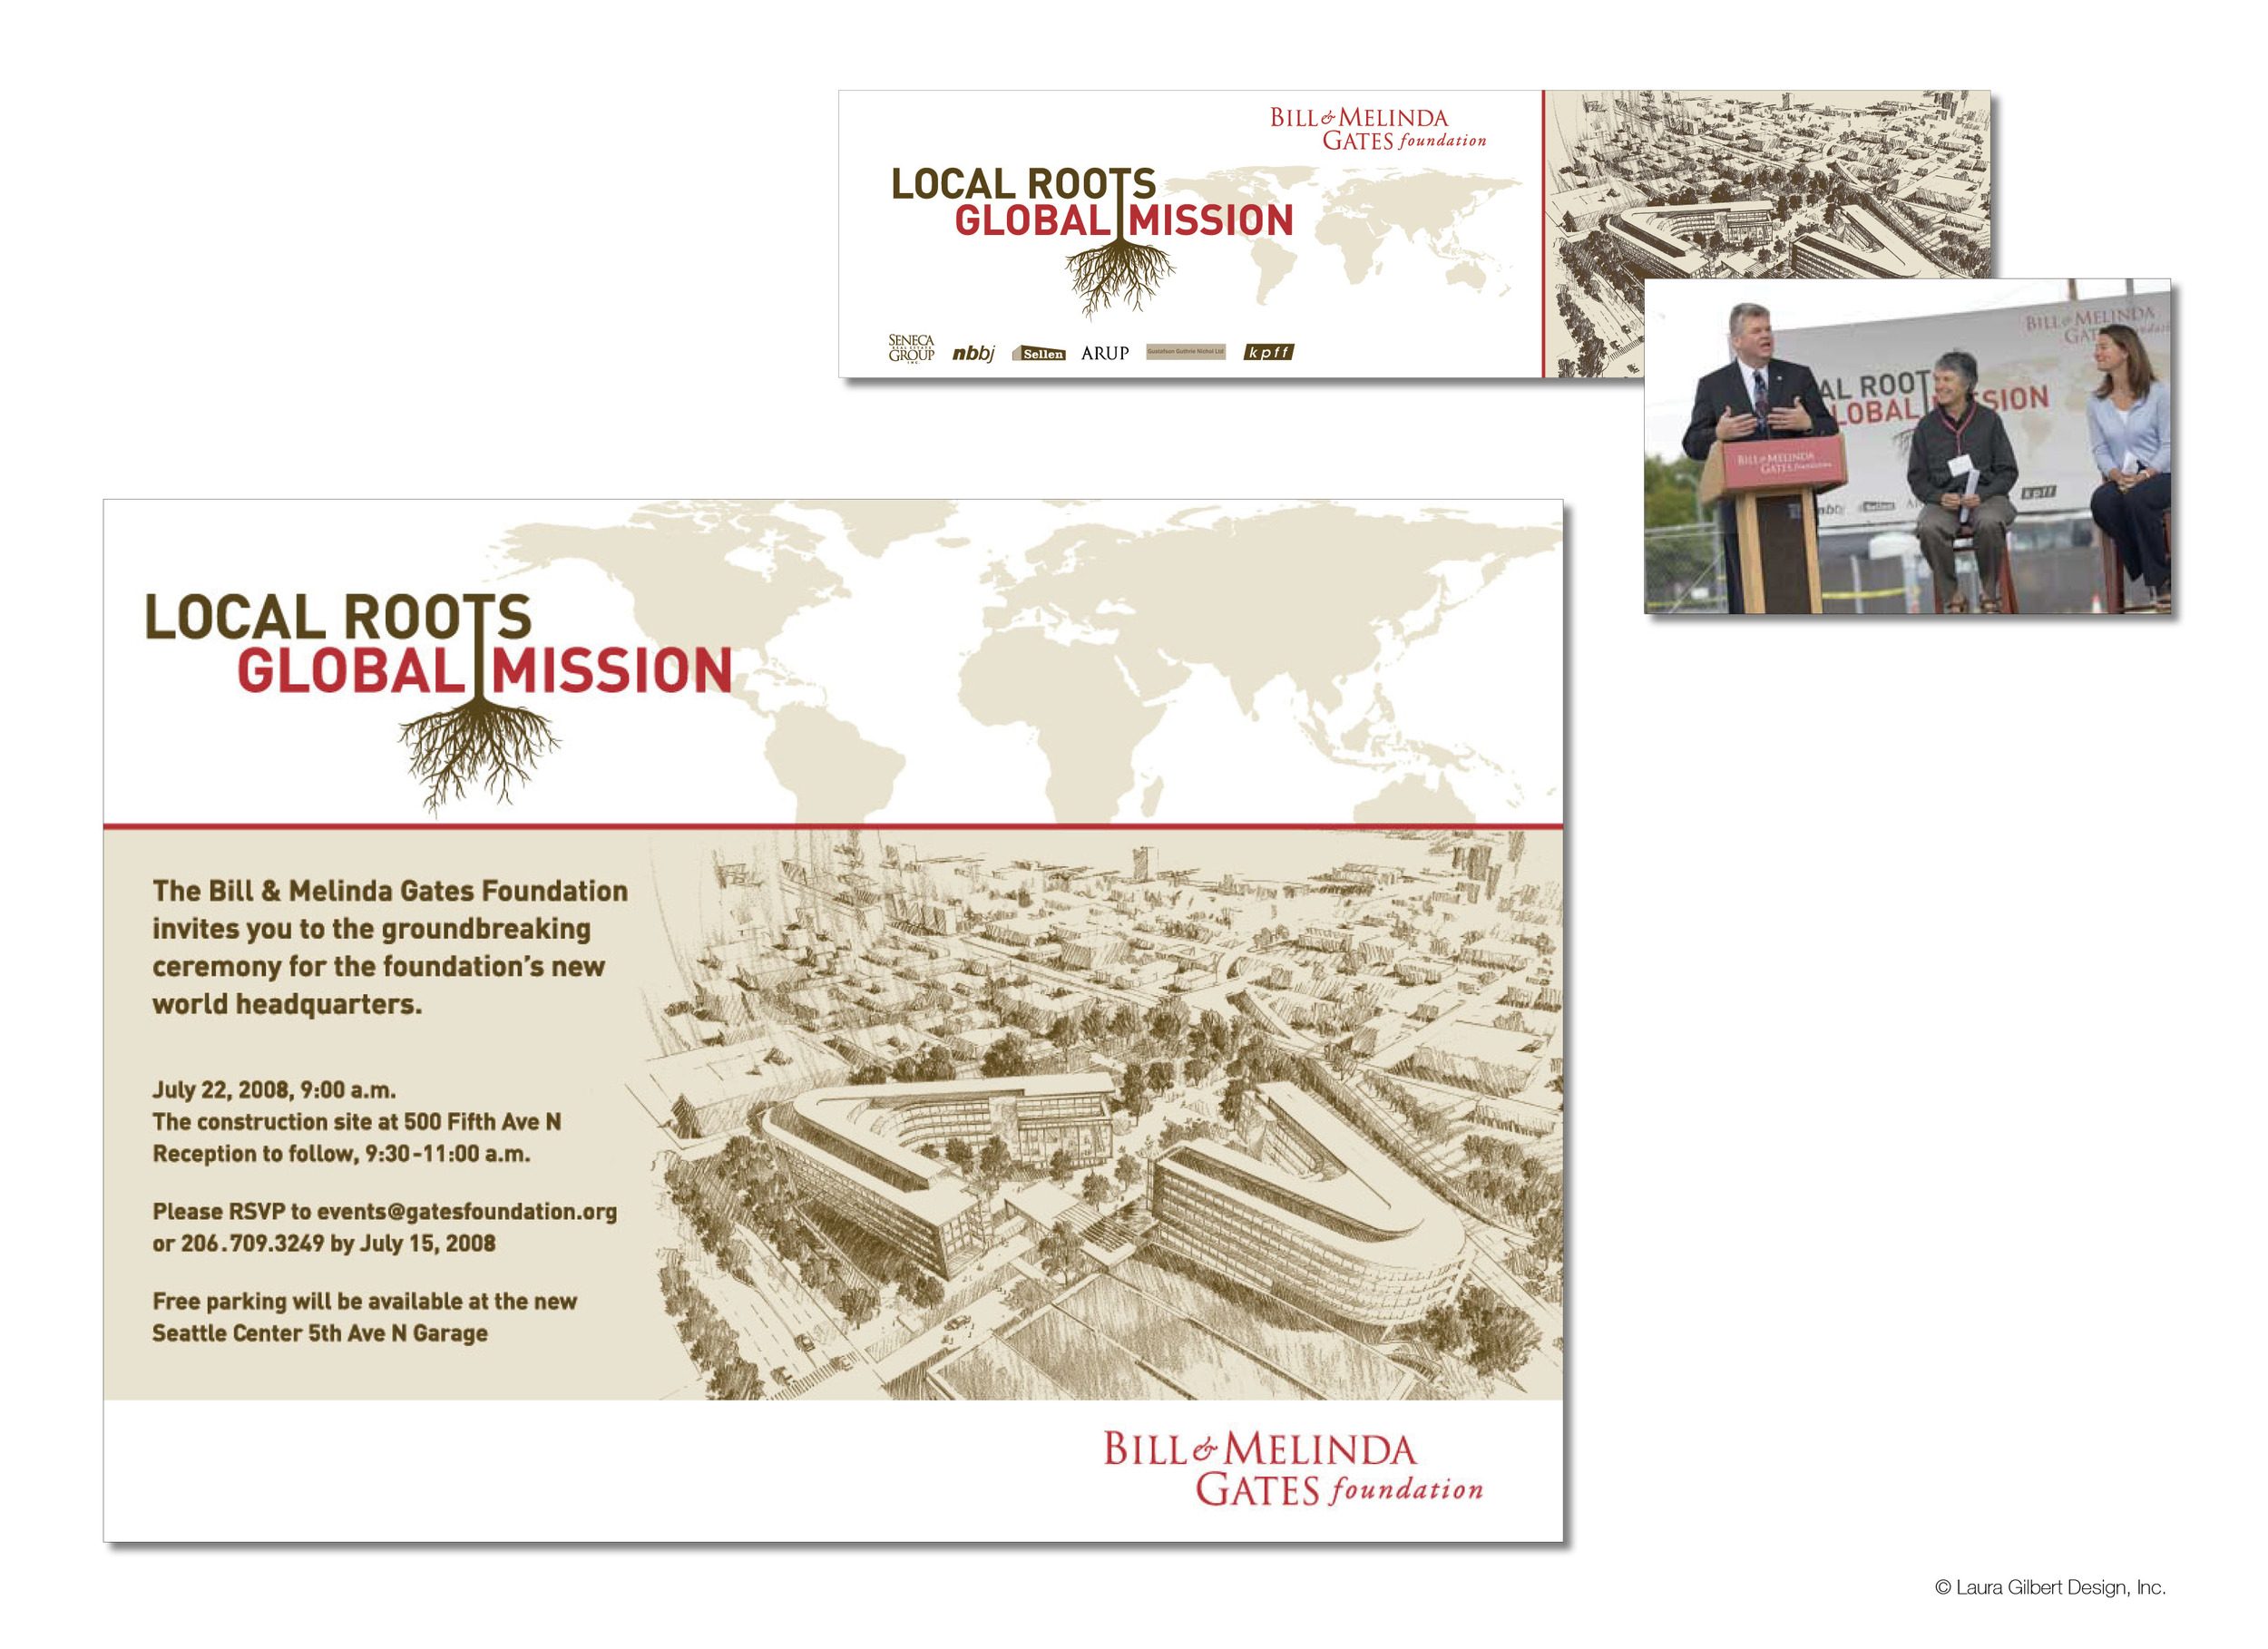 Event branding and materials in support of the groundbreaking ceremony for the foundation's new headquarters in Seattle